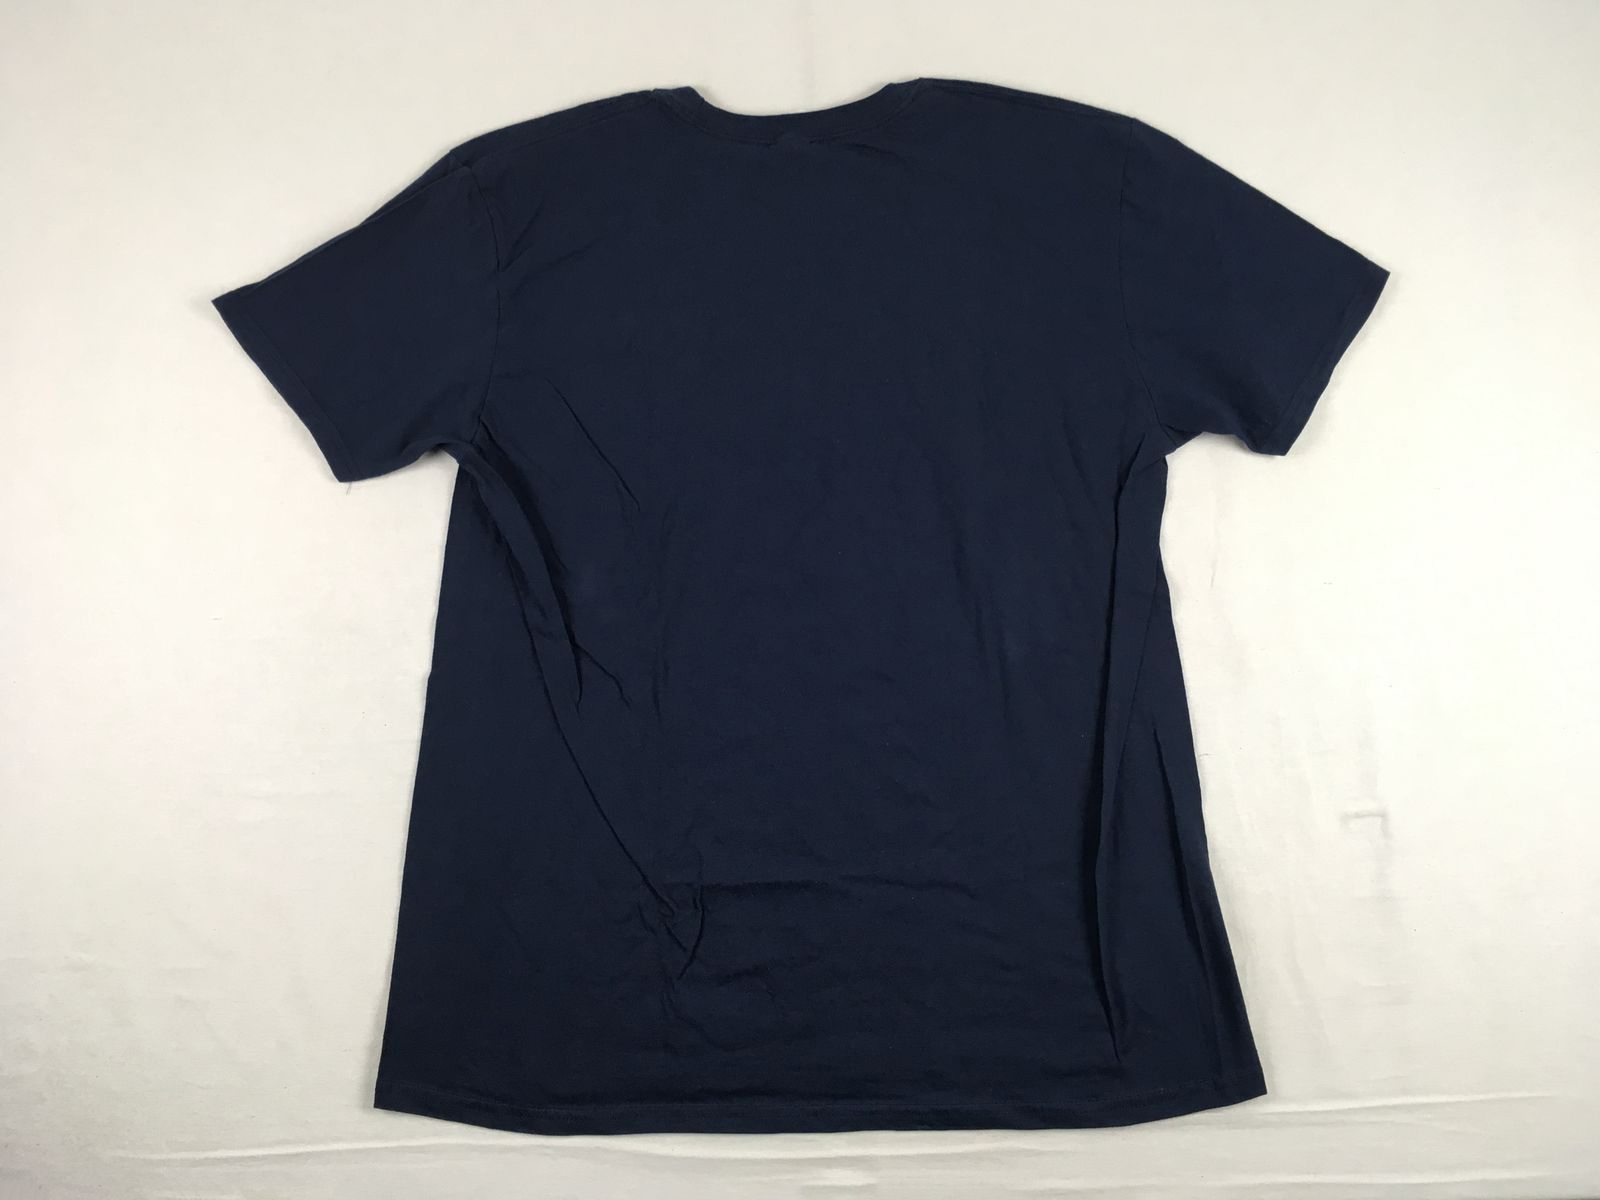 Details about NEW Gildan Cleveland Indians - Navy Cotton Short Sleeve Shirt  (XL) b96b981c45b07